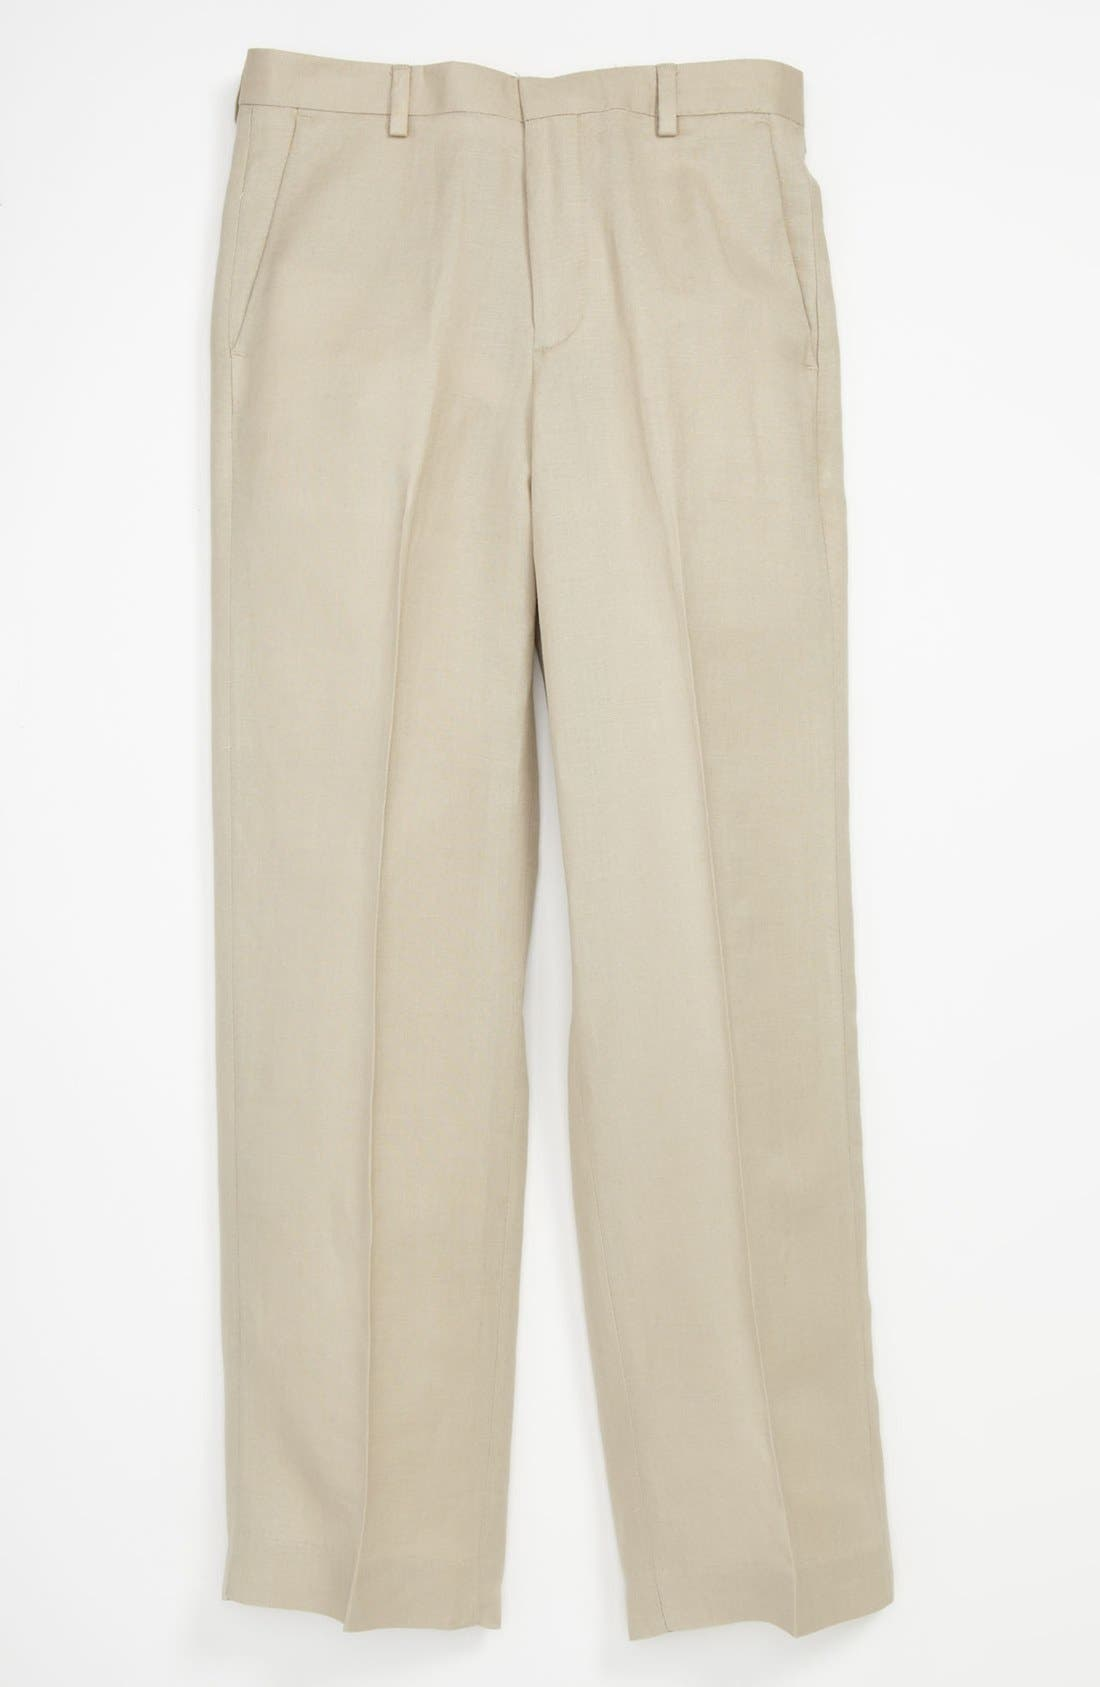 Alternate Image 1 Selected - Nordstrom 'Phillip' Linen Blend Trousers (Little Boys & Big Boys)